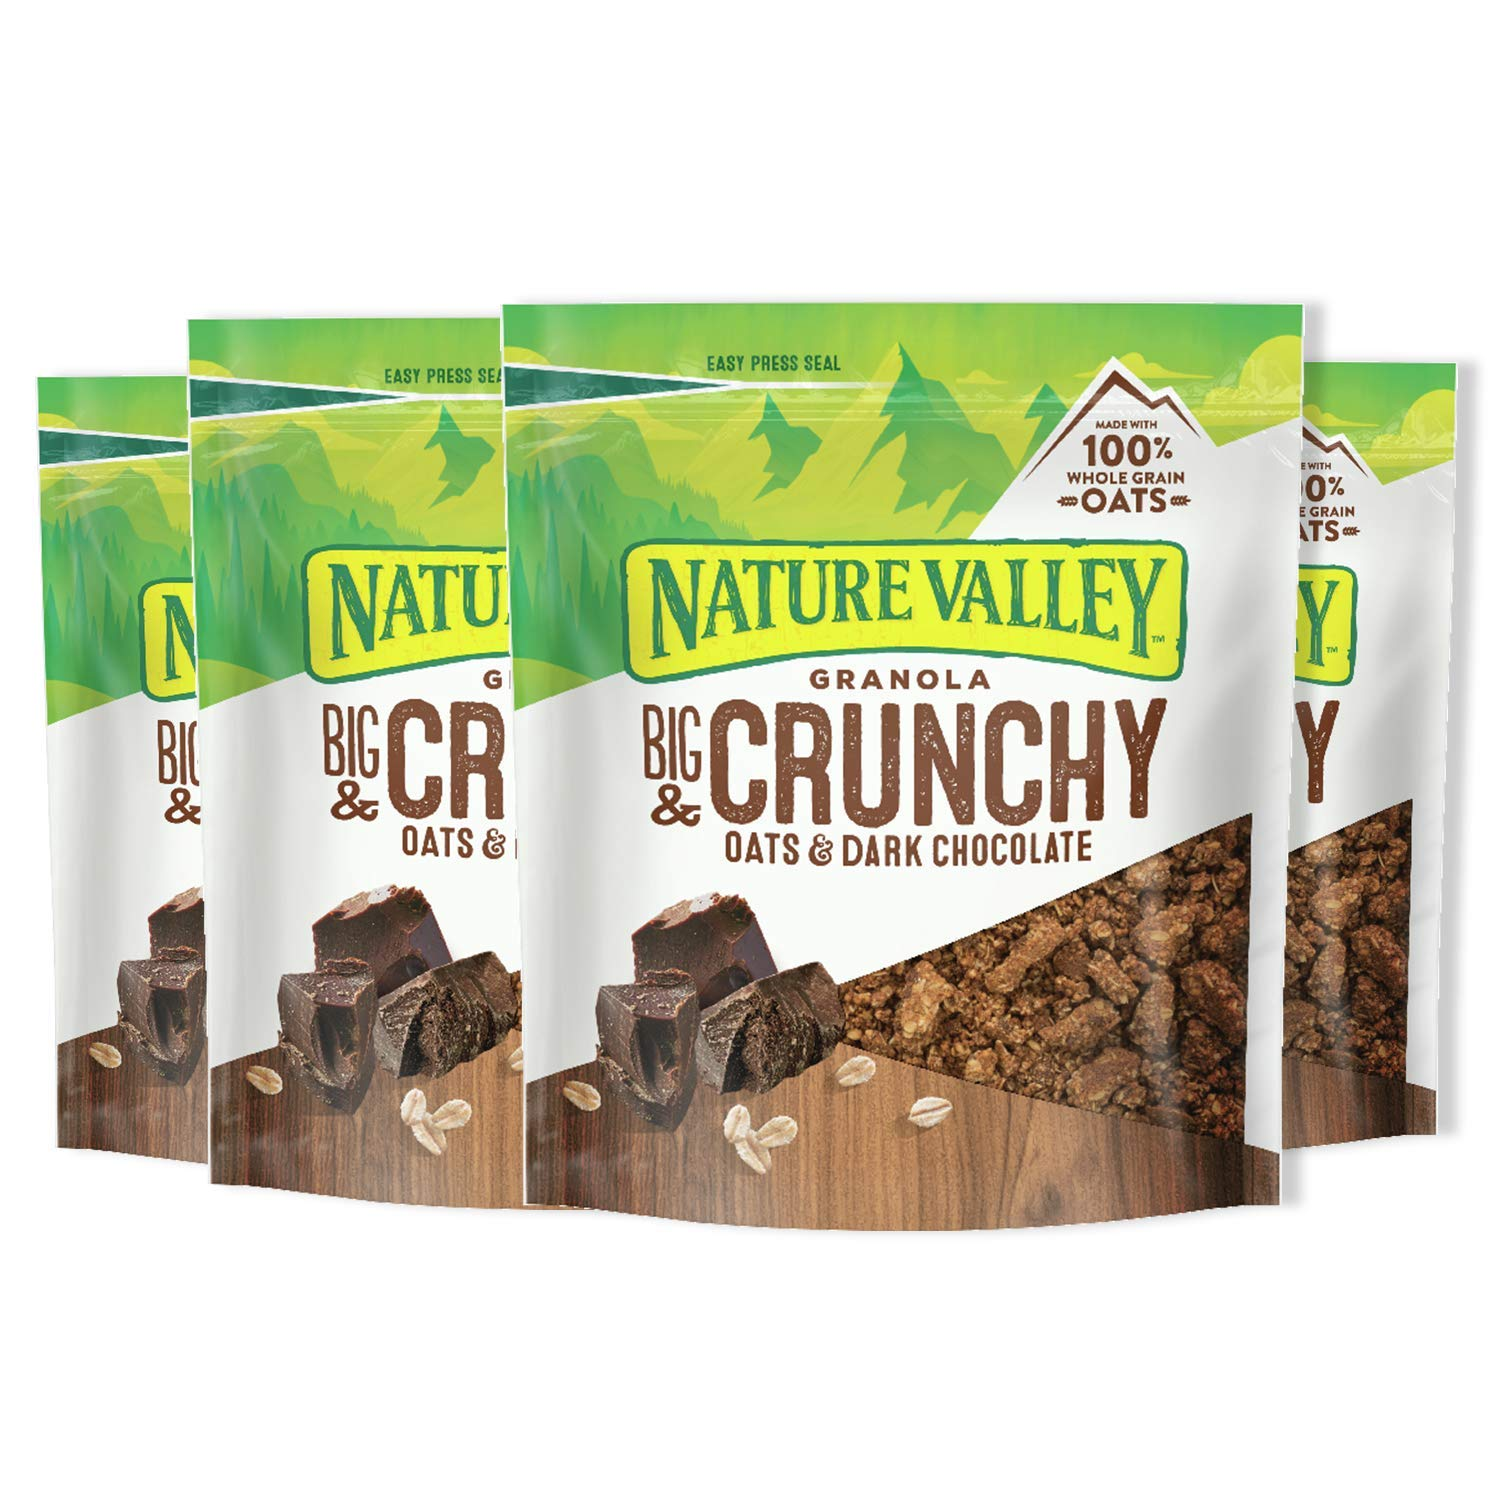 Nature Valley Granola, Crunchy Oats and Dark Chocolate, 16 oz, 4 Count